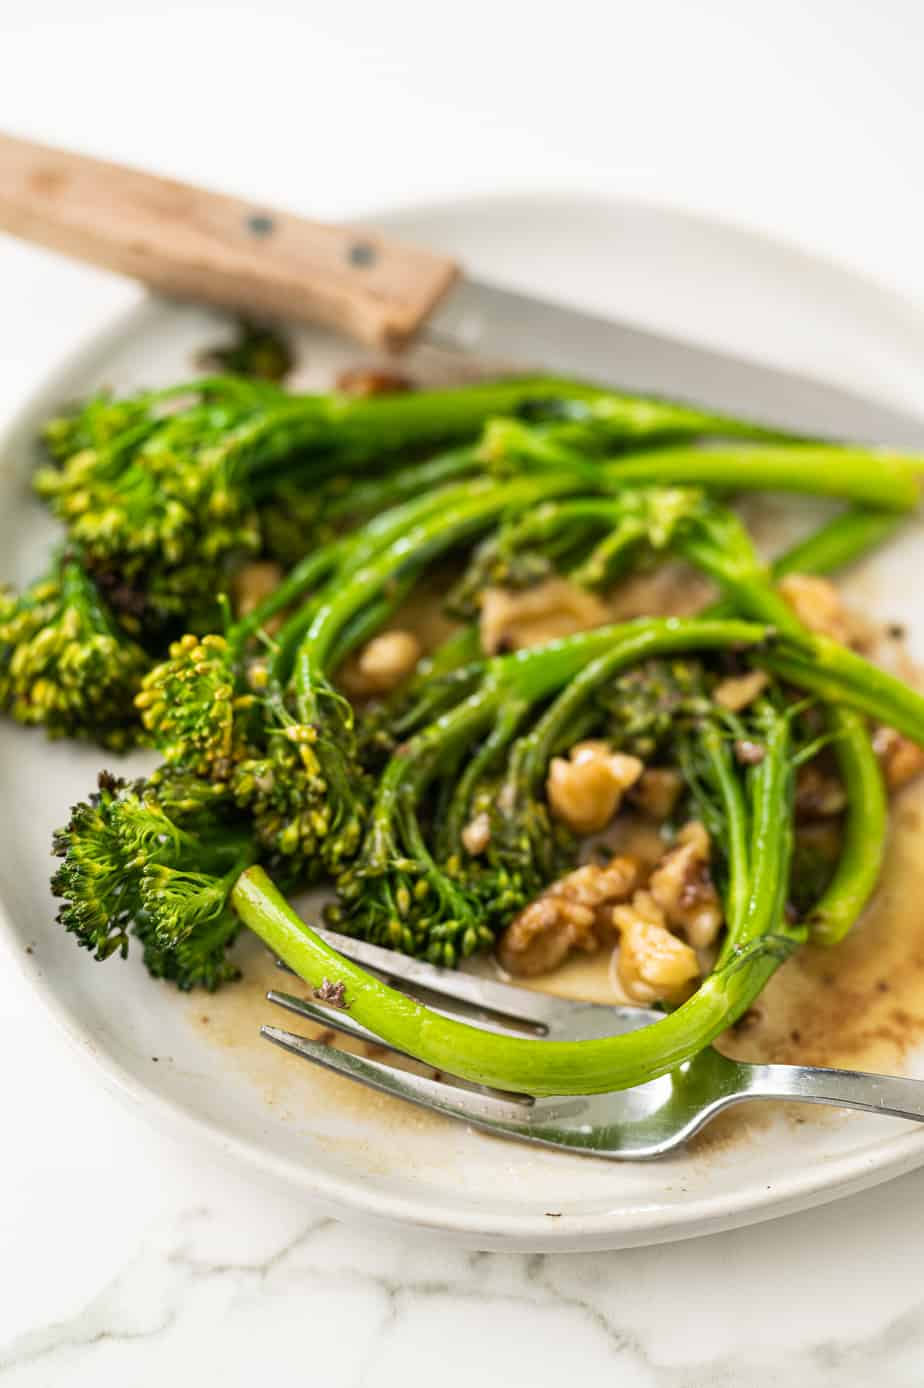 broccolini on a plate with a fork